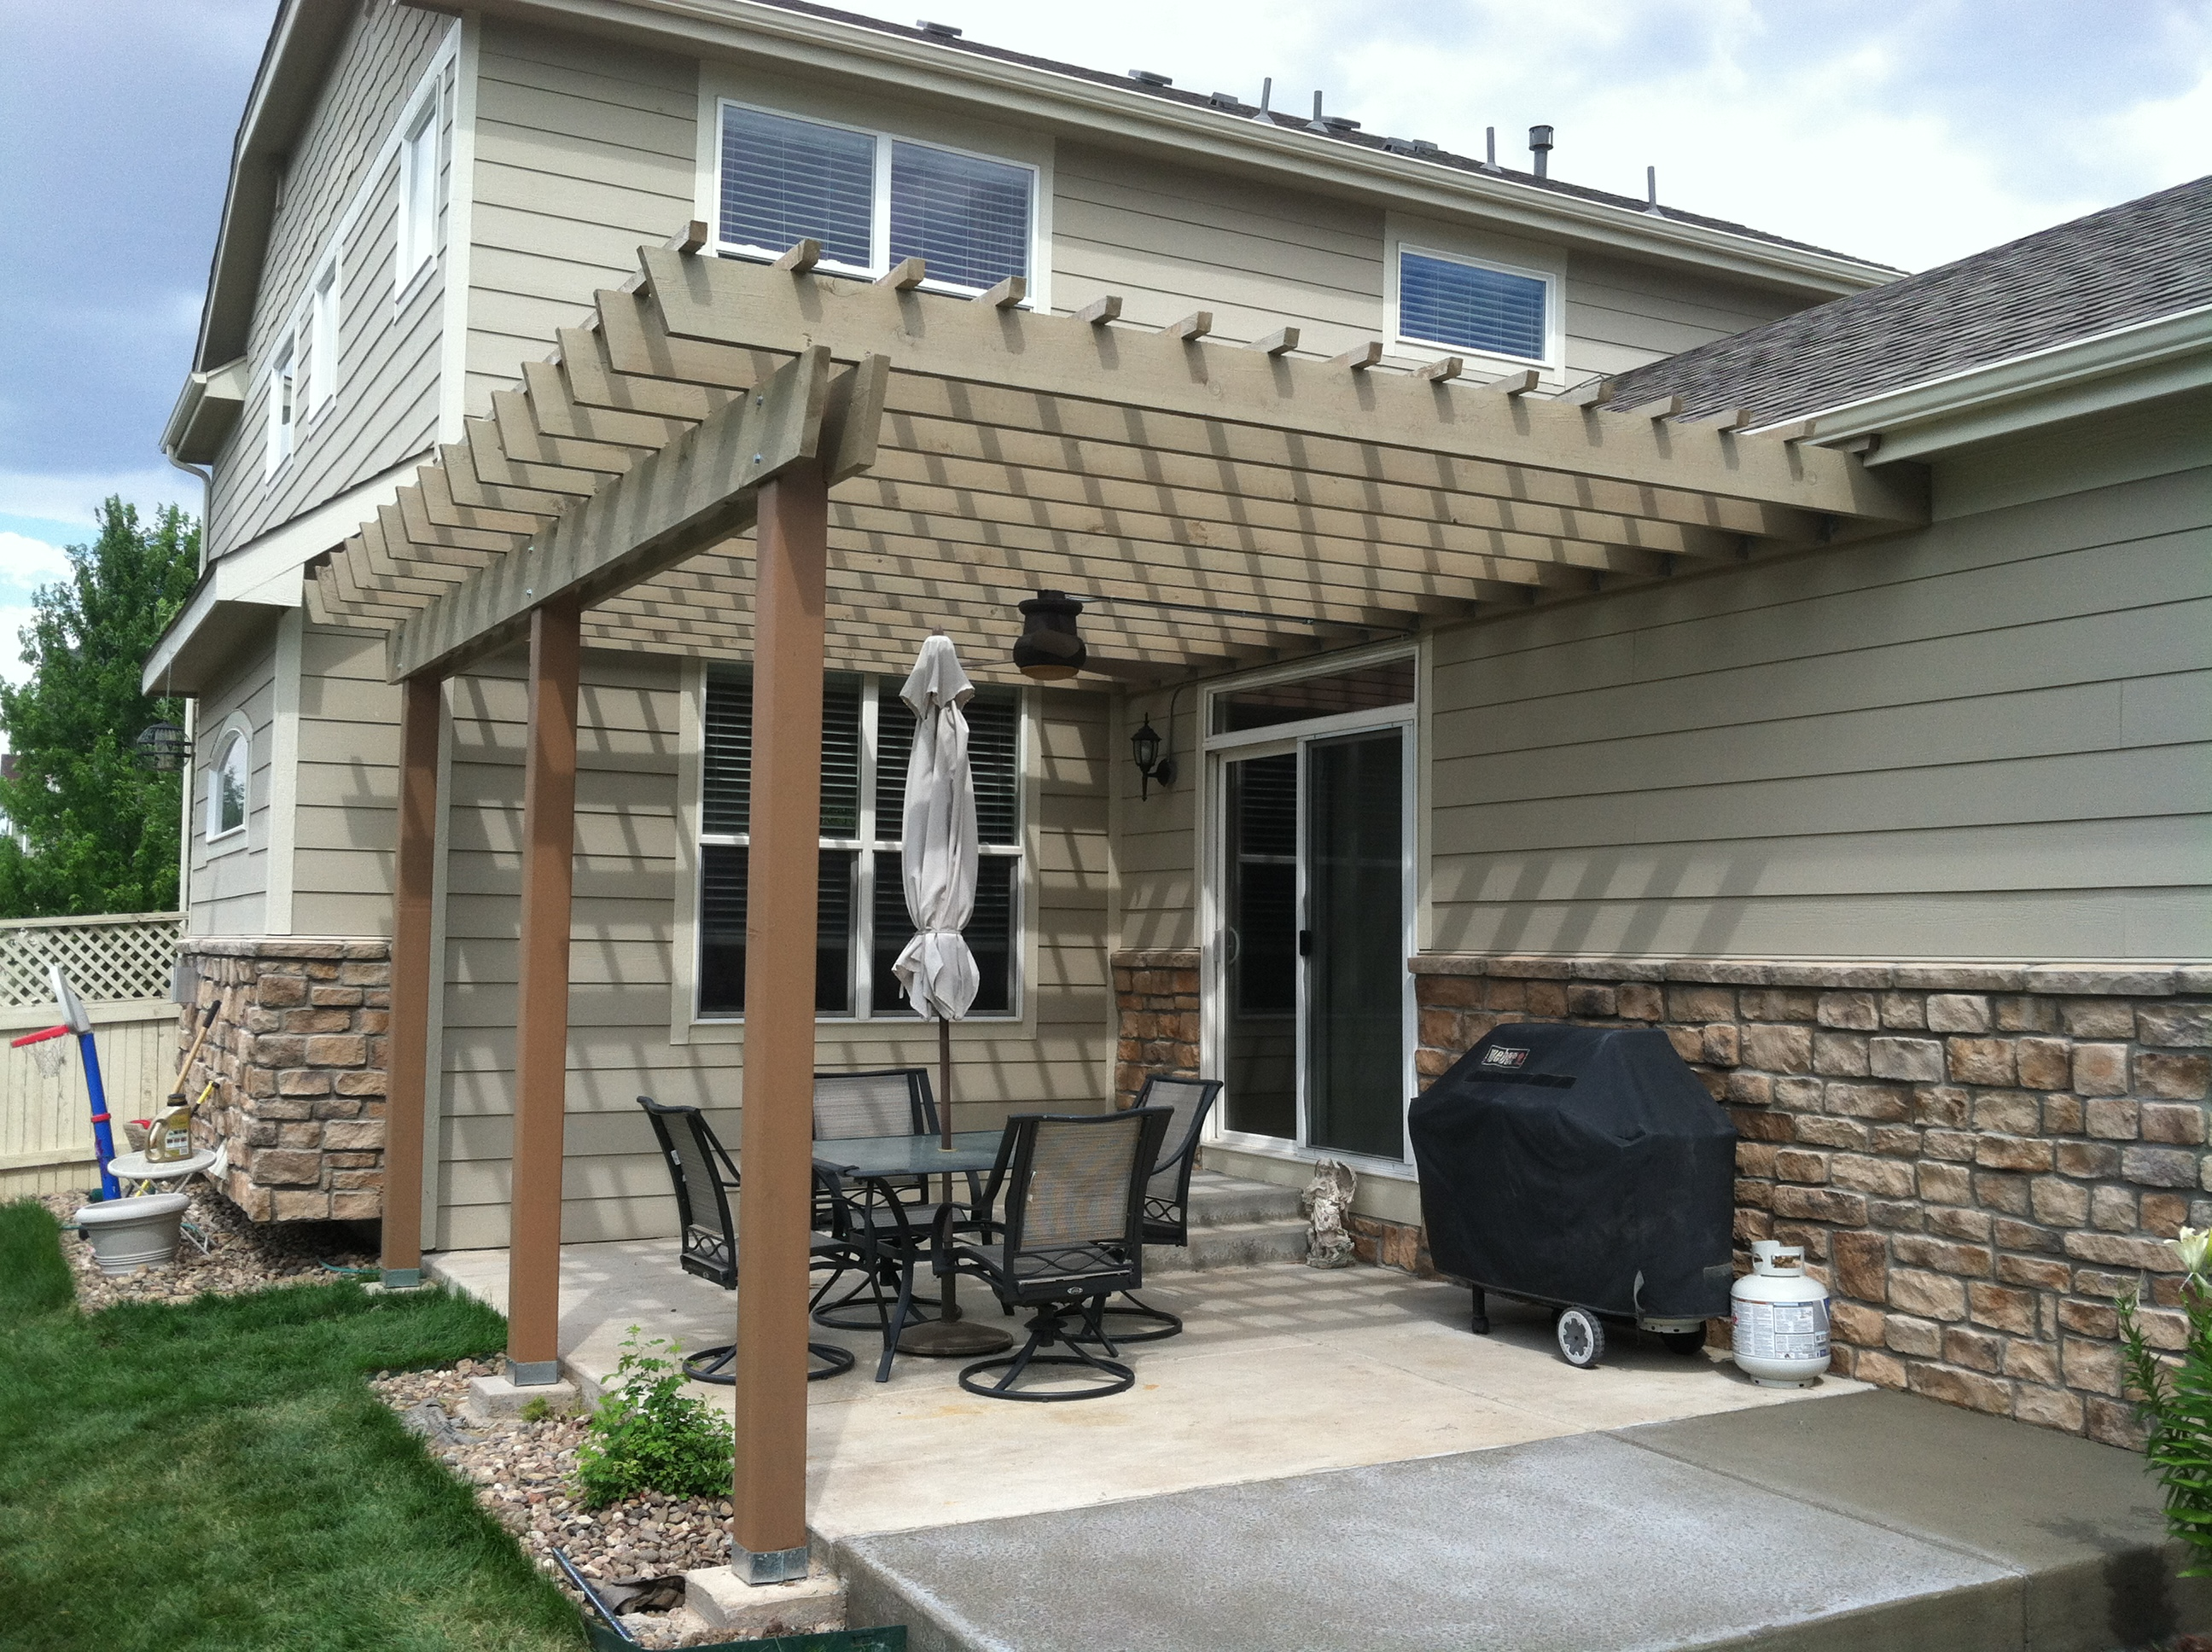 Work superior solutions by design for Patio construction ideas